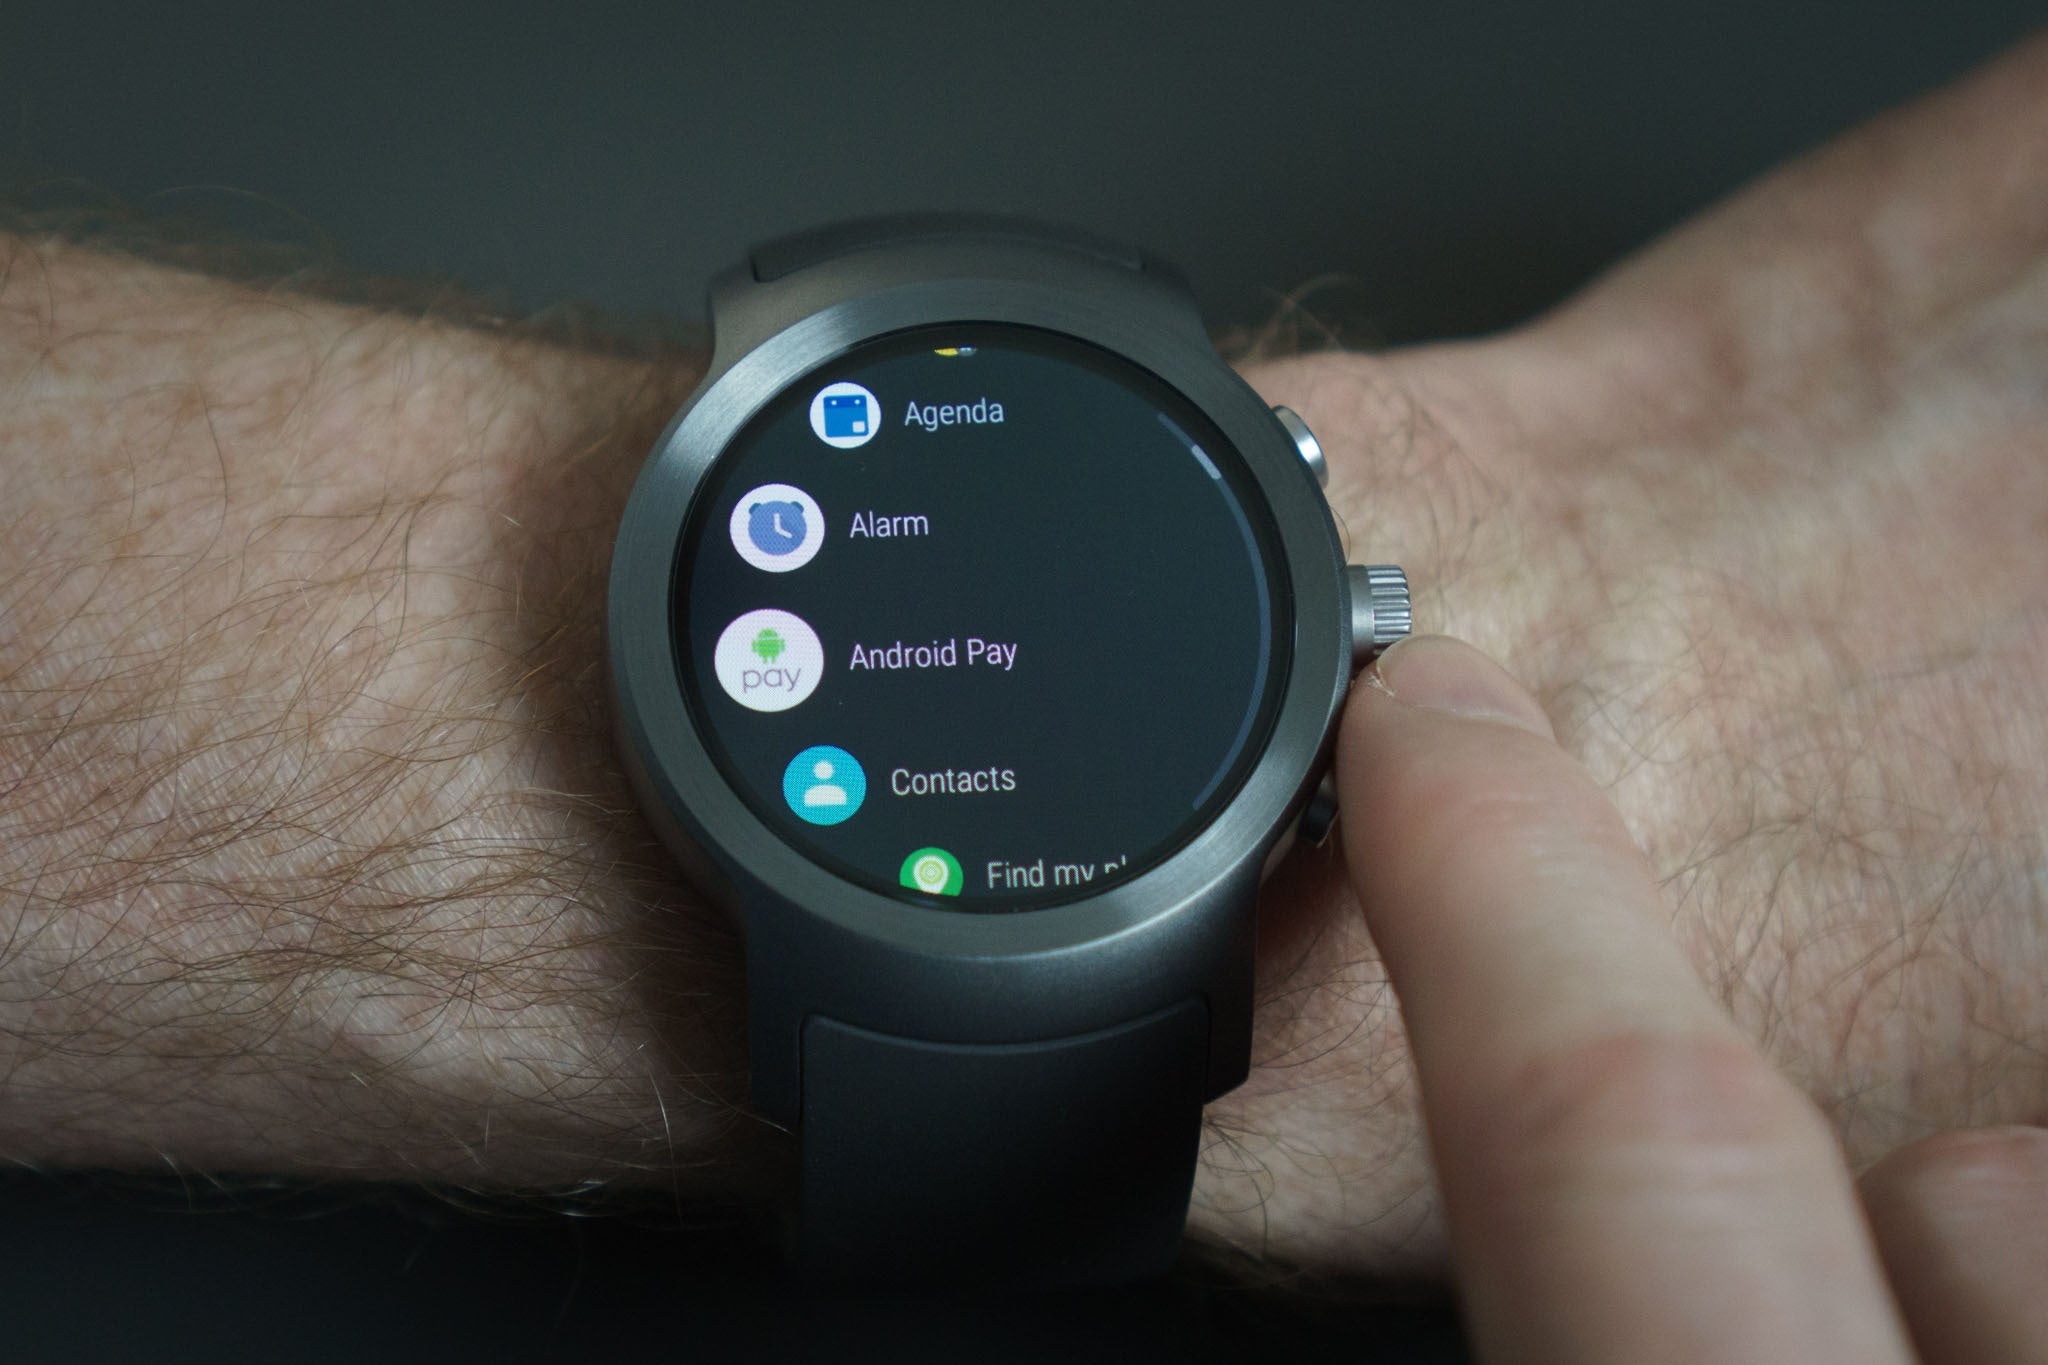 Best Android Wear watches: Our expert picks